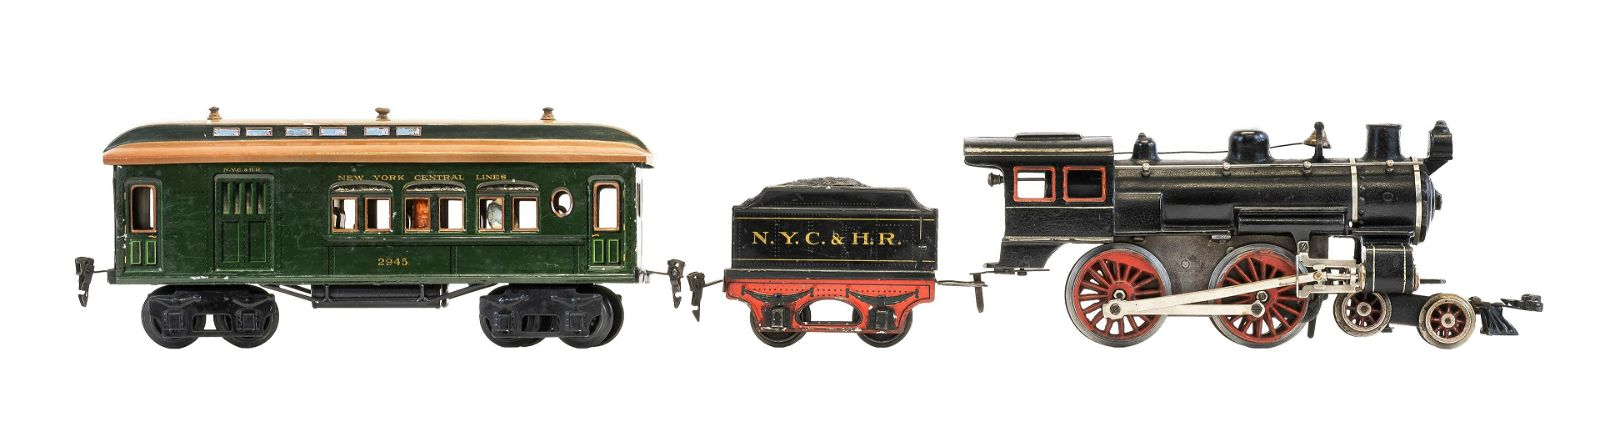 """Marklin """"New York Central Lines"""" Train Set with Box"""